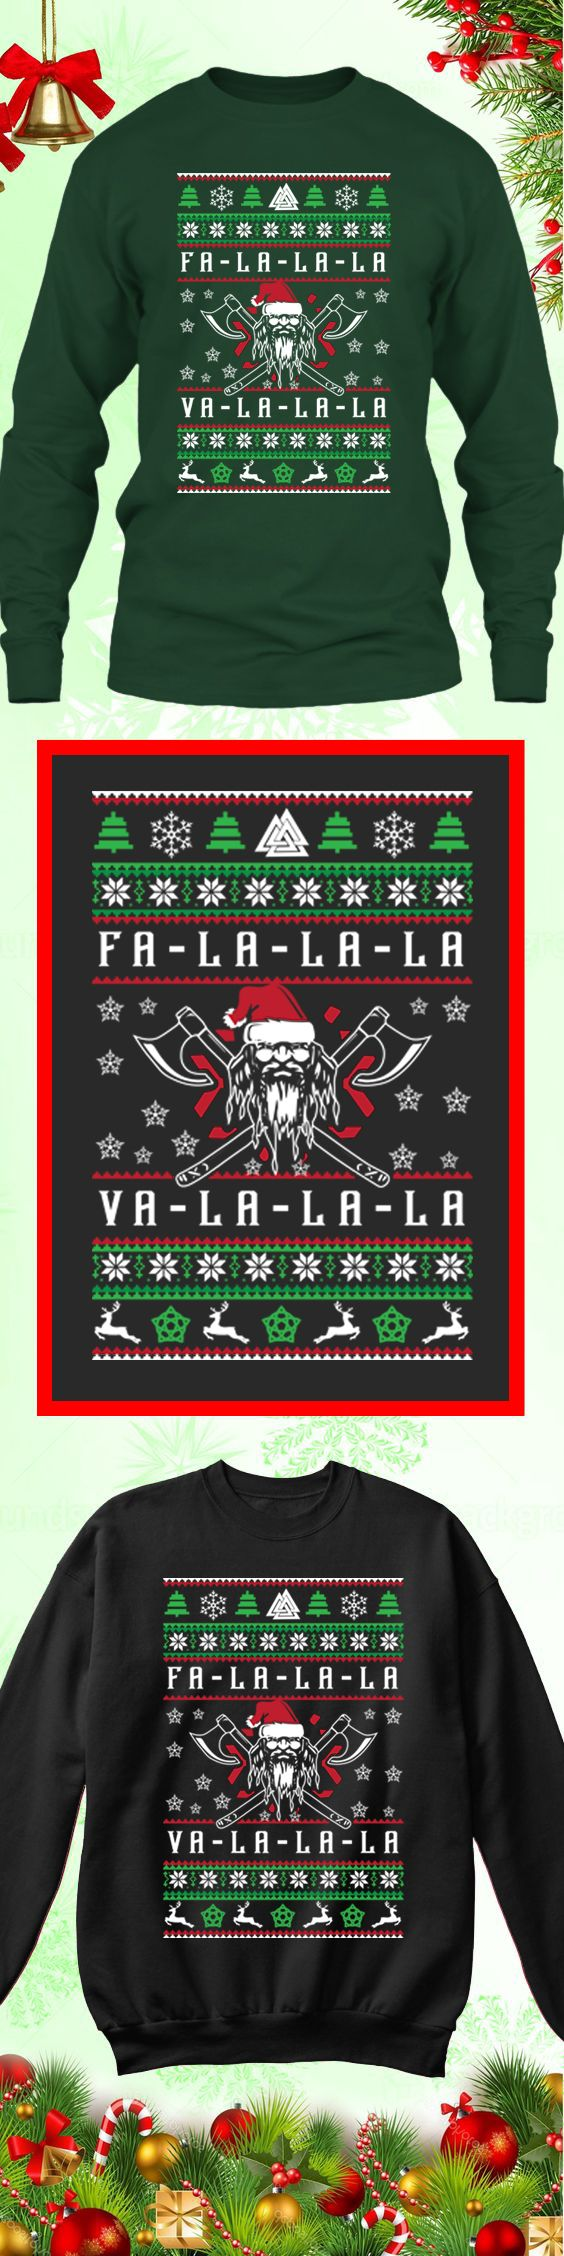 451 best Ugly Christmas Sweaters images on Pinterest | Buy now ...